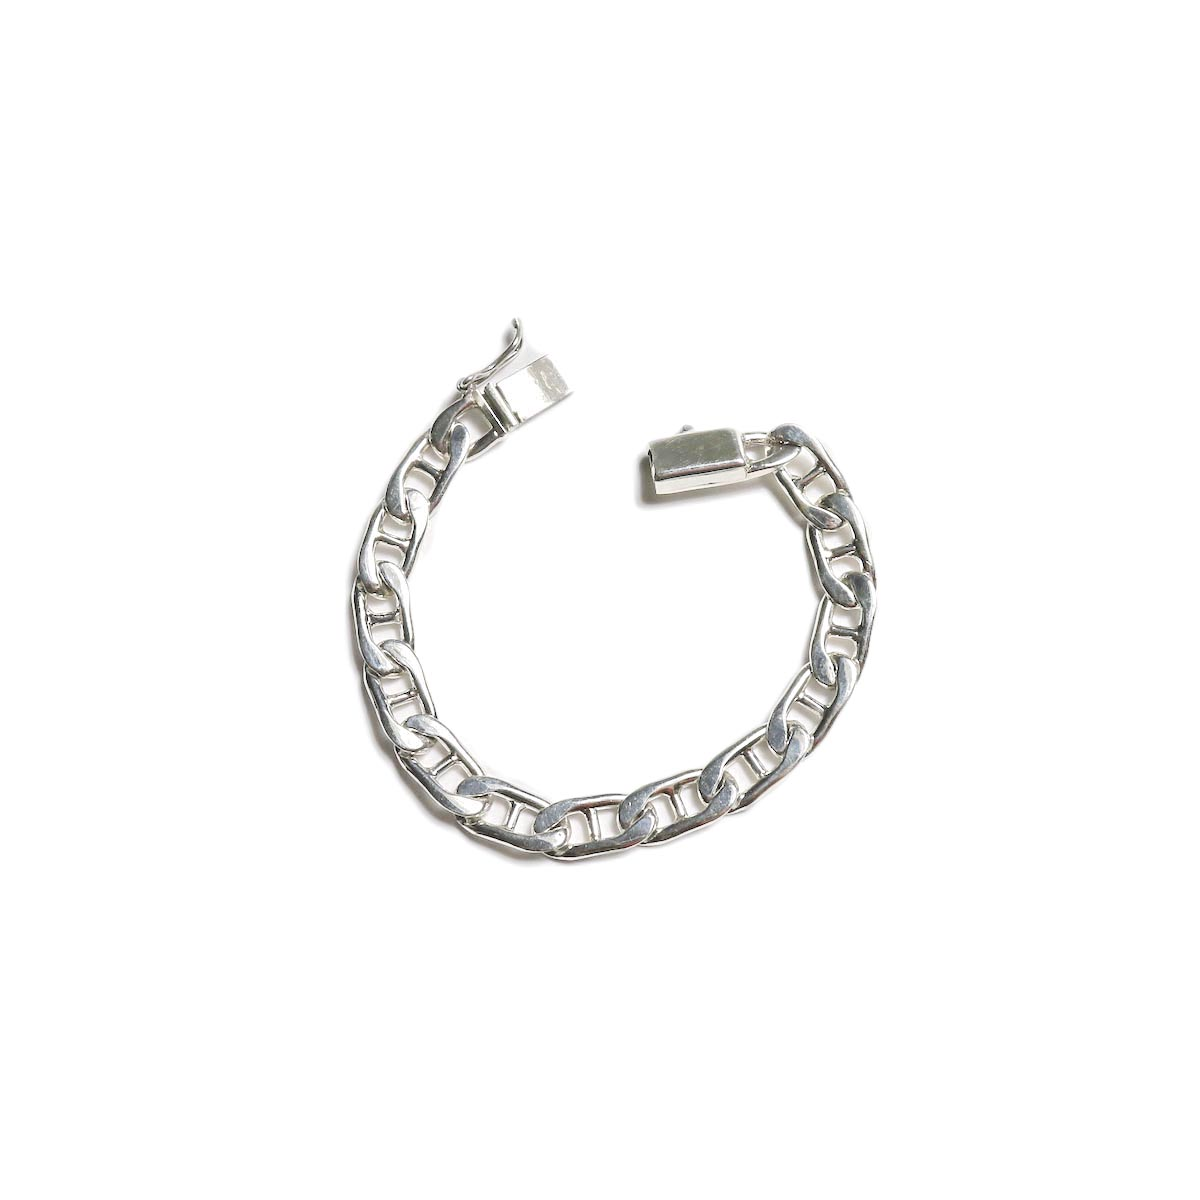 FIFTH SILVER / silver-1490-1 Silver Chain Bracelet (8mm) 正面